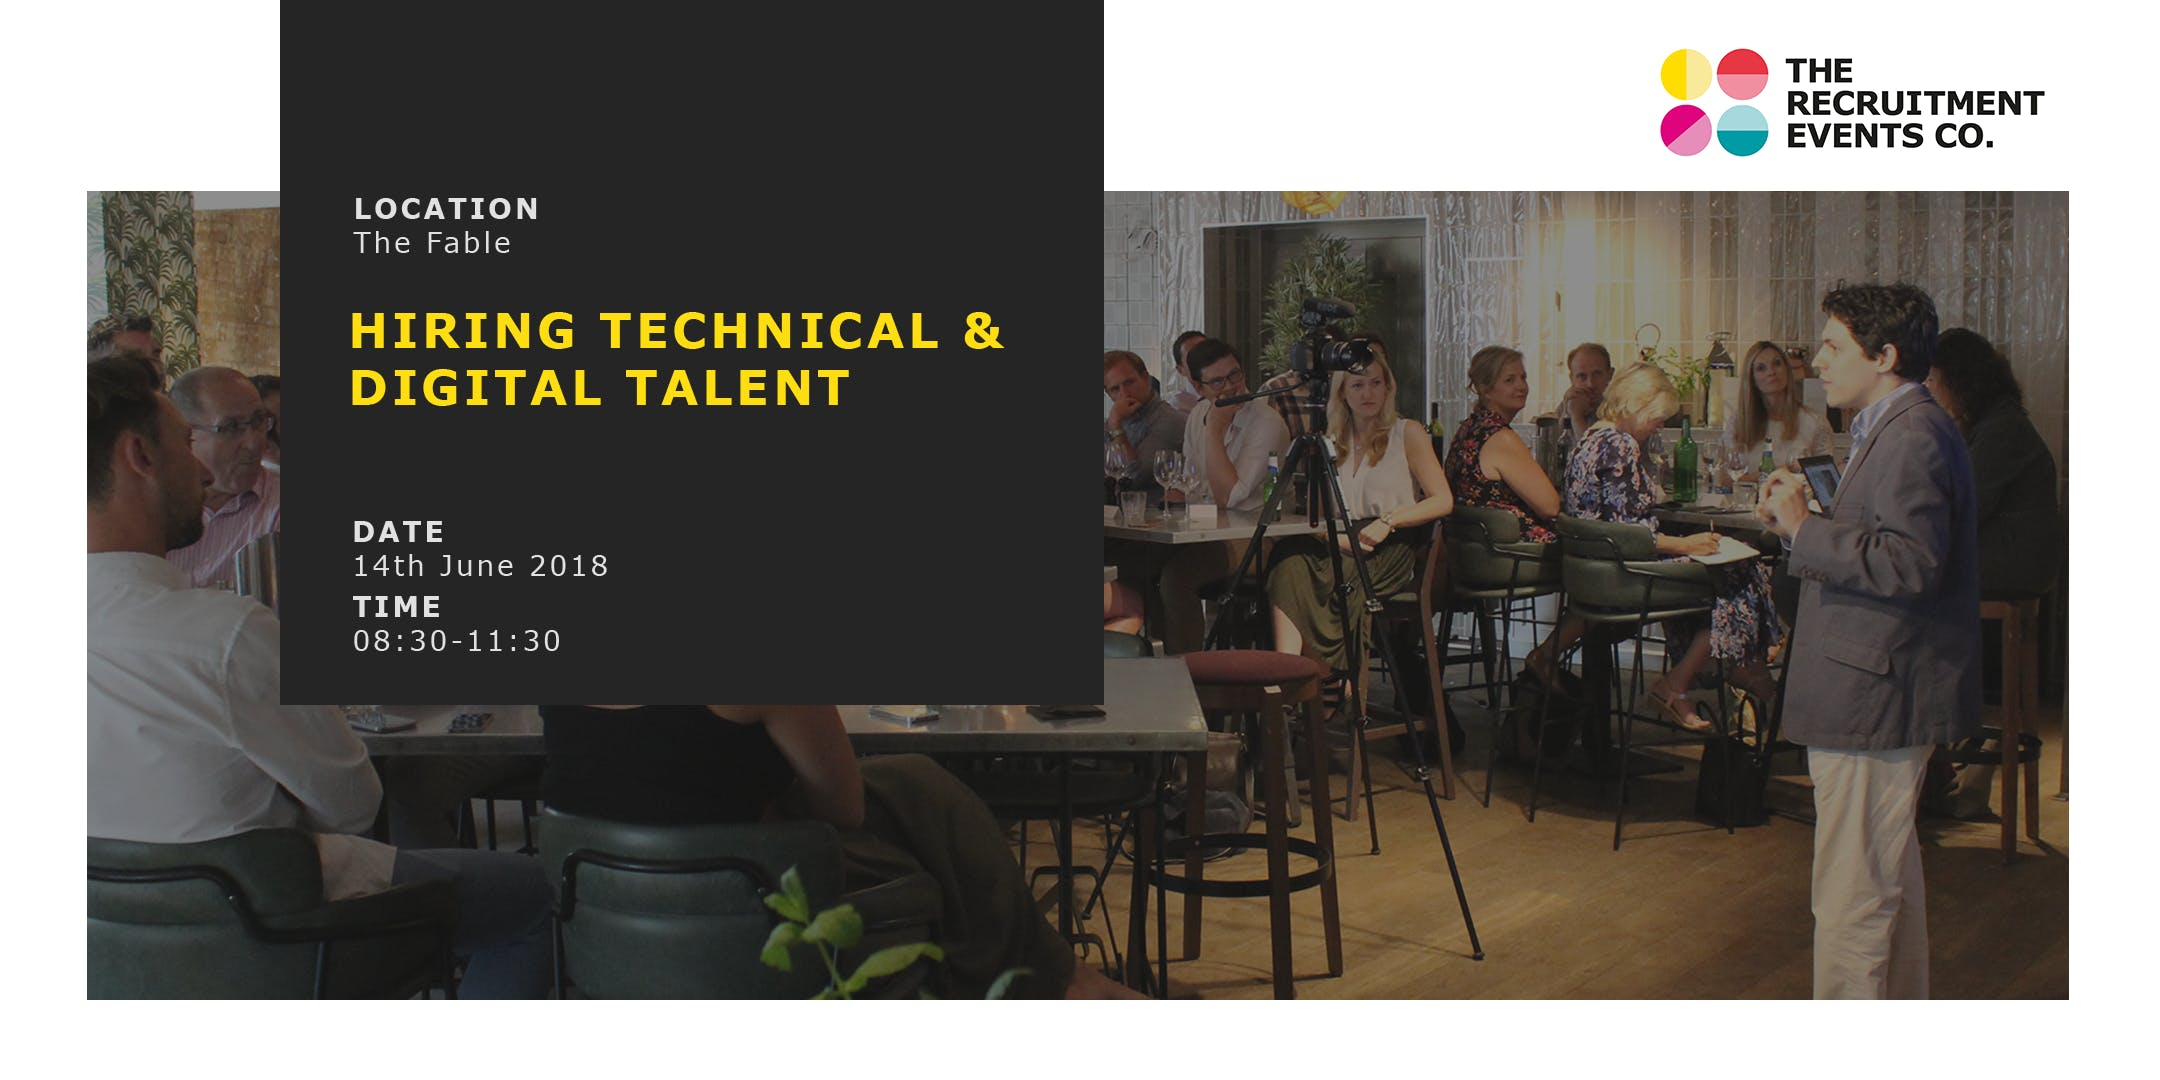 Hiring Technical & Digital Talent - The Recruitment Events Co. June 14th